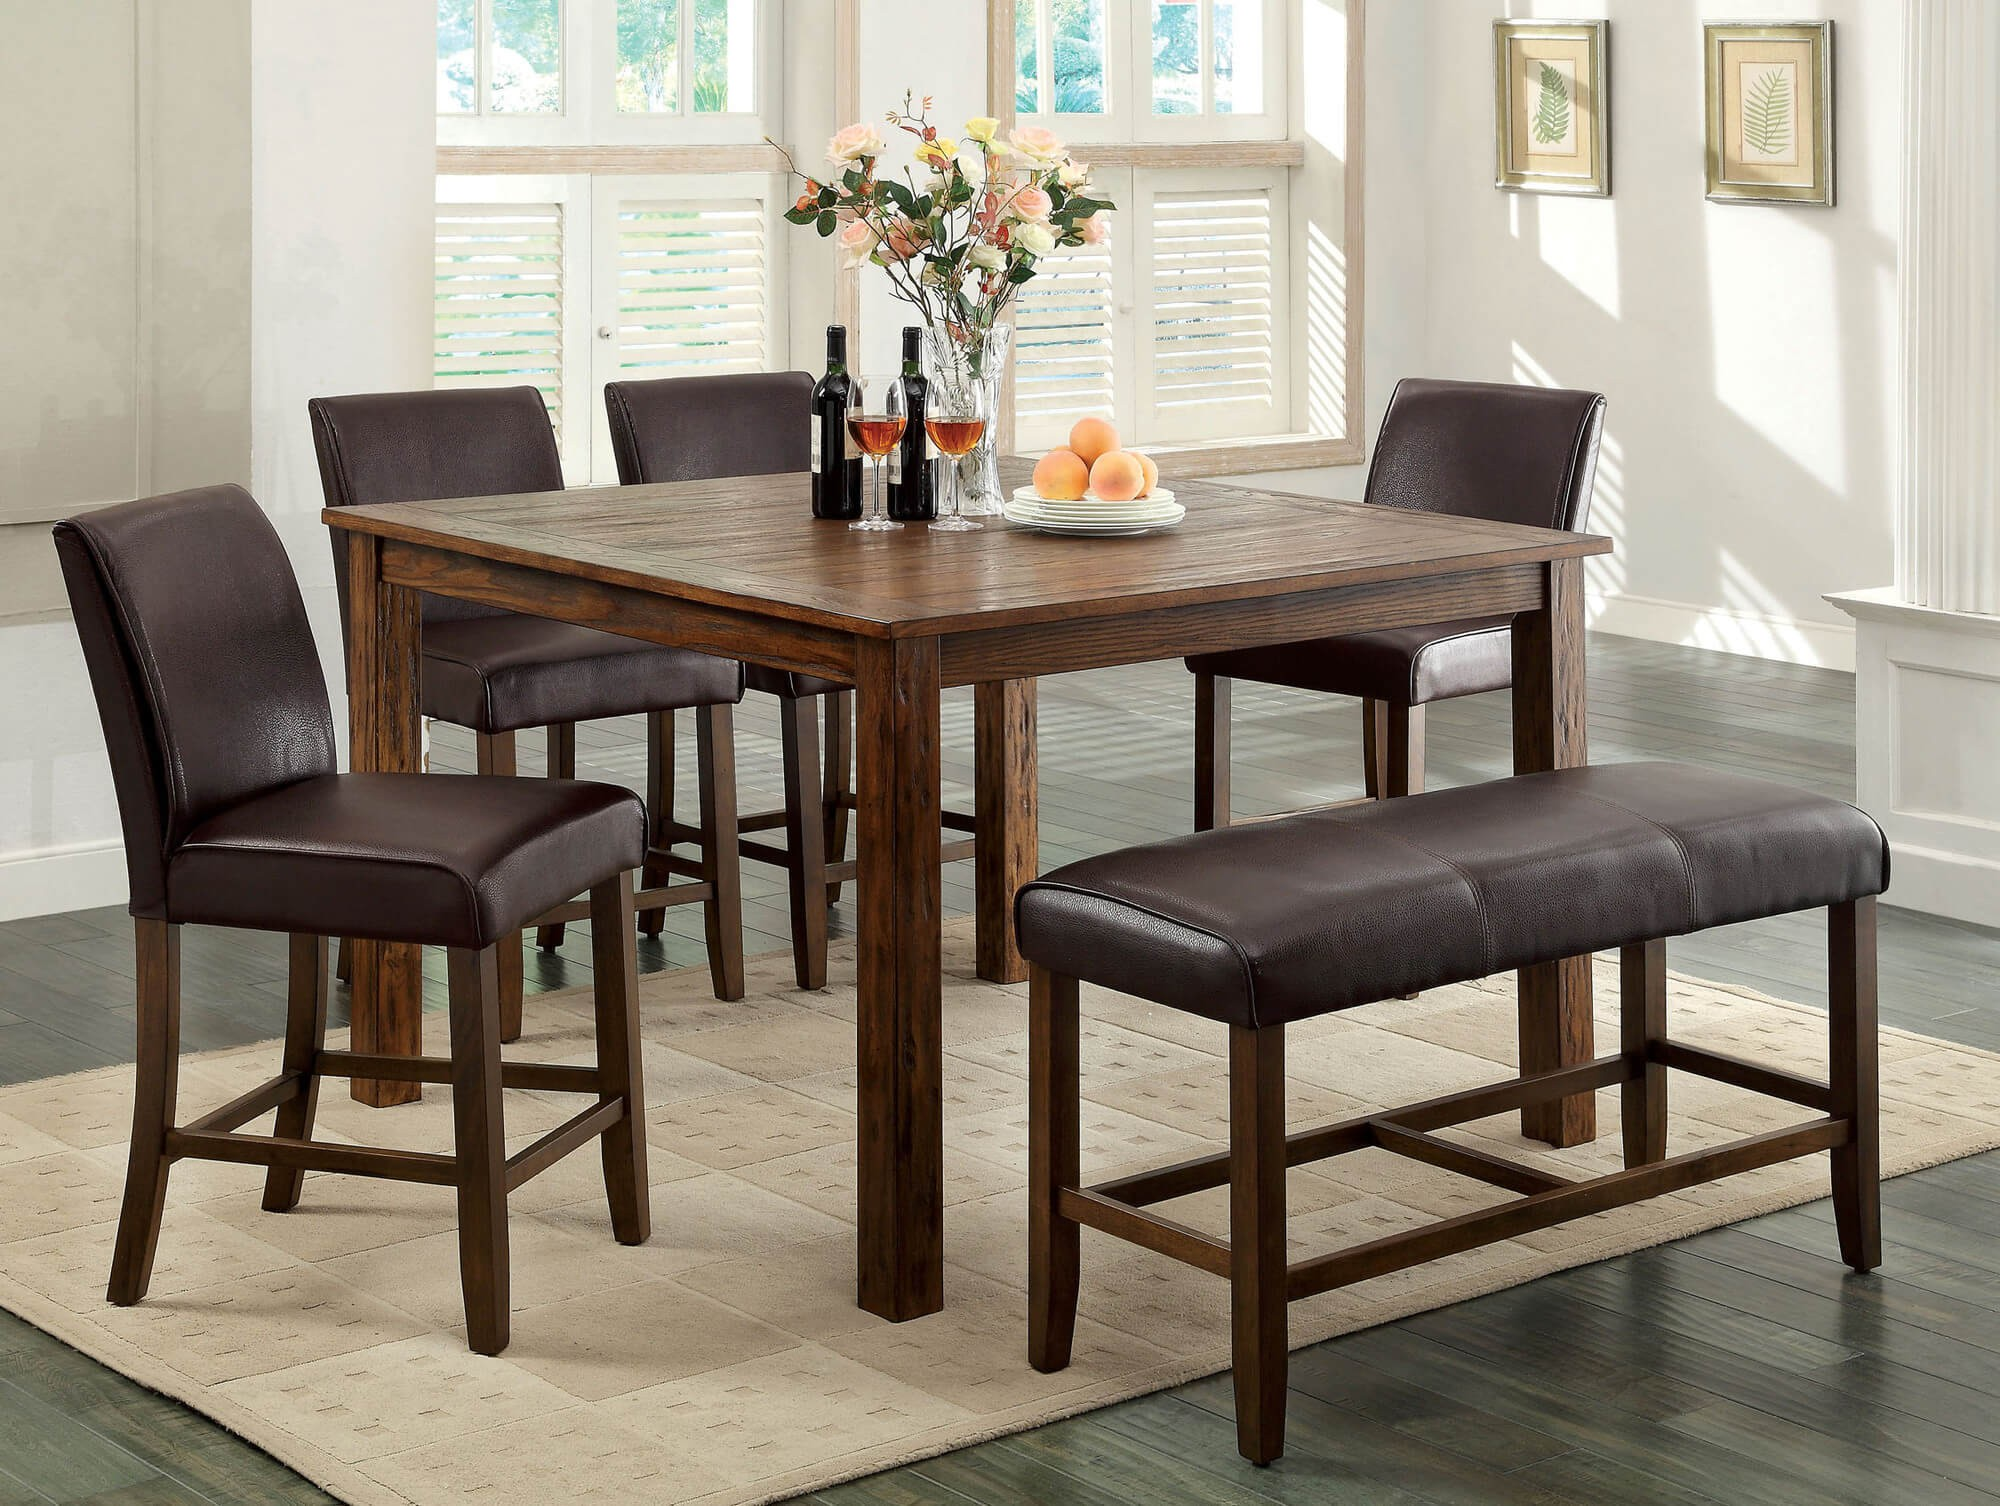 Round Dining Table Sets For 8